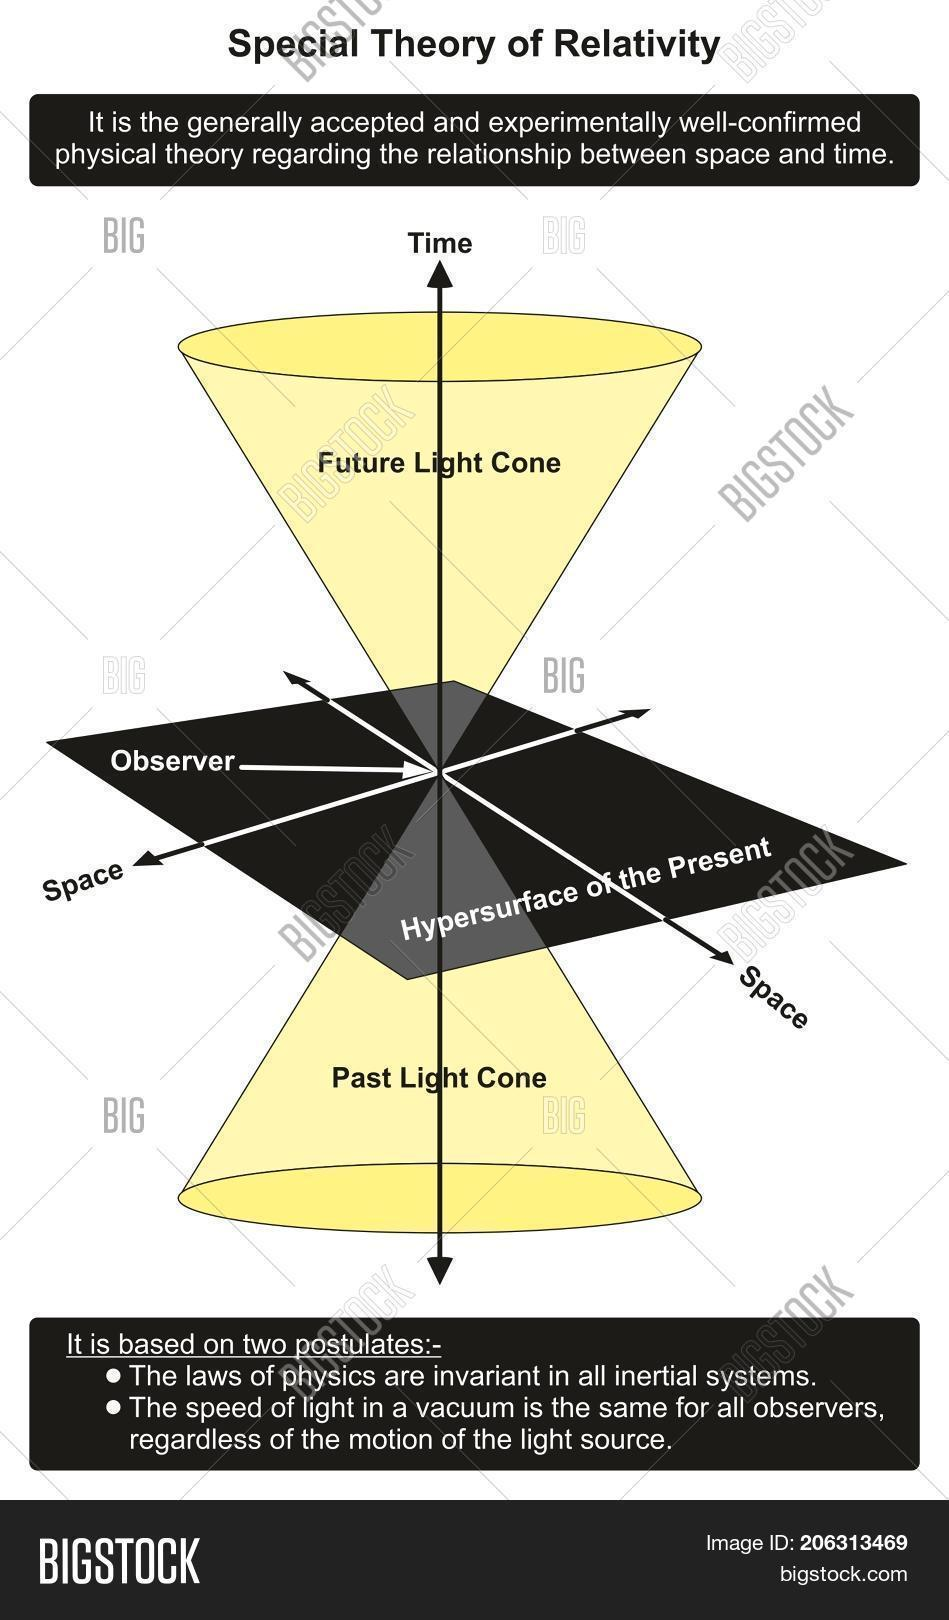 medium resolution of special theory of relativity infographic diagram showing relationship between time and space in past present and